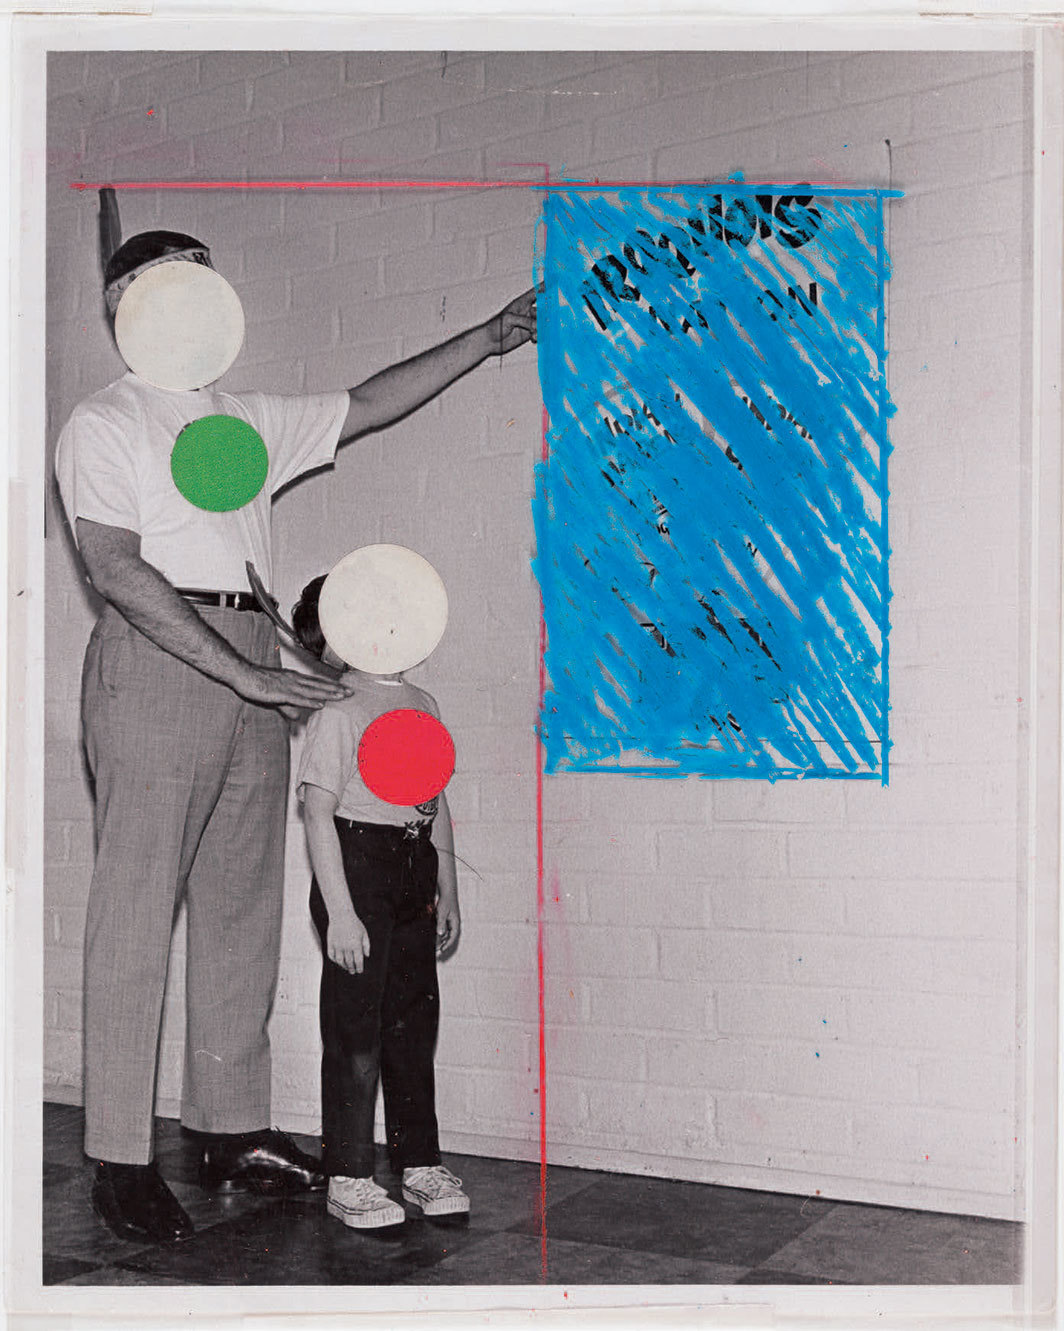 "John Baldessari, Untitled, 1986, crayon and stickers on synthetic-polymer sheet over gelatin silver print, 9 4⁄3 × 7 3⁄8"". © Estate of John Baldessari."